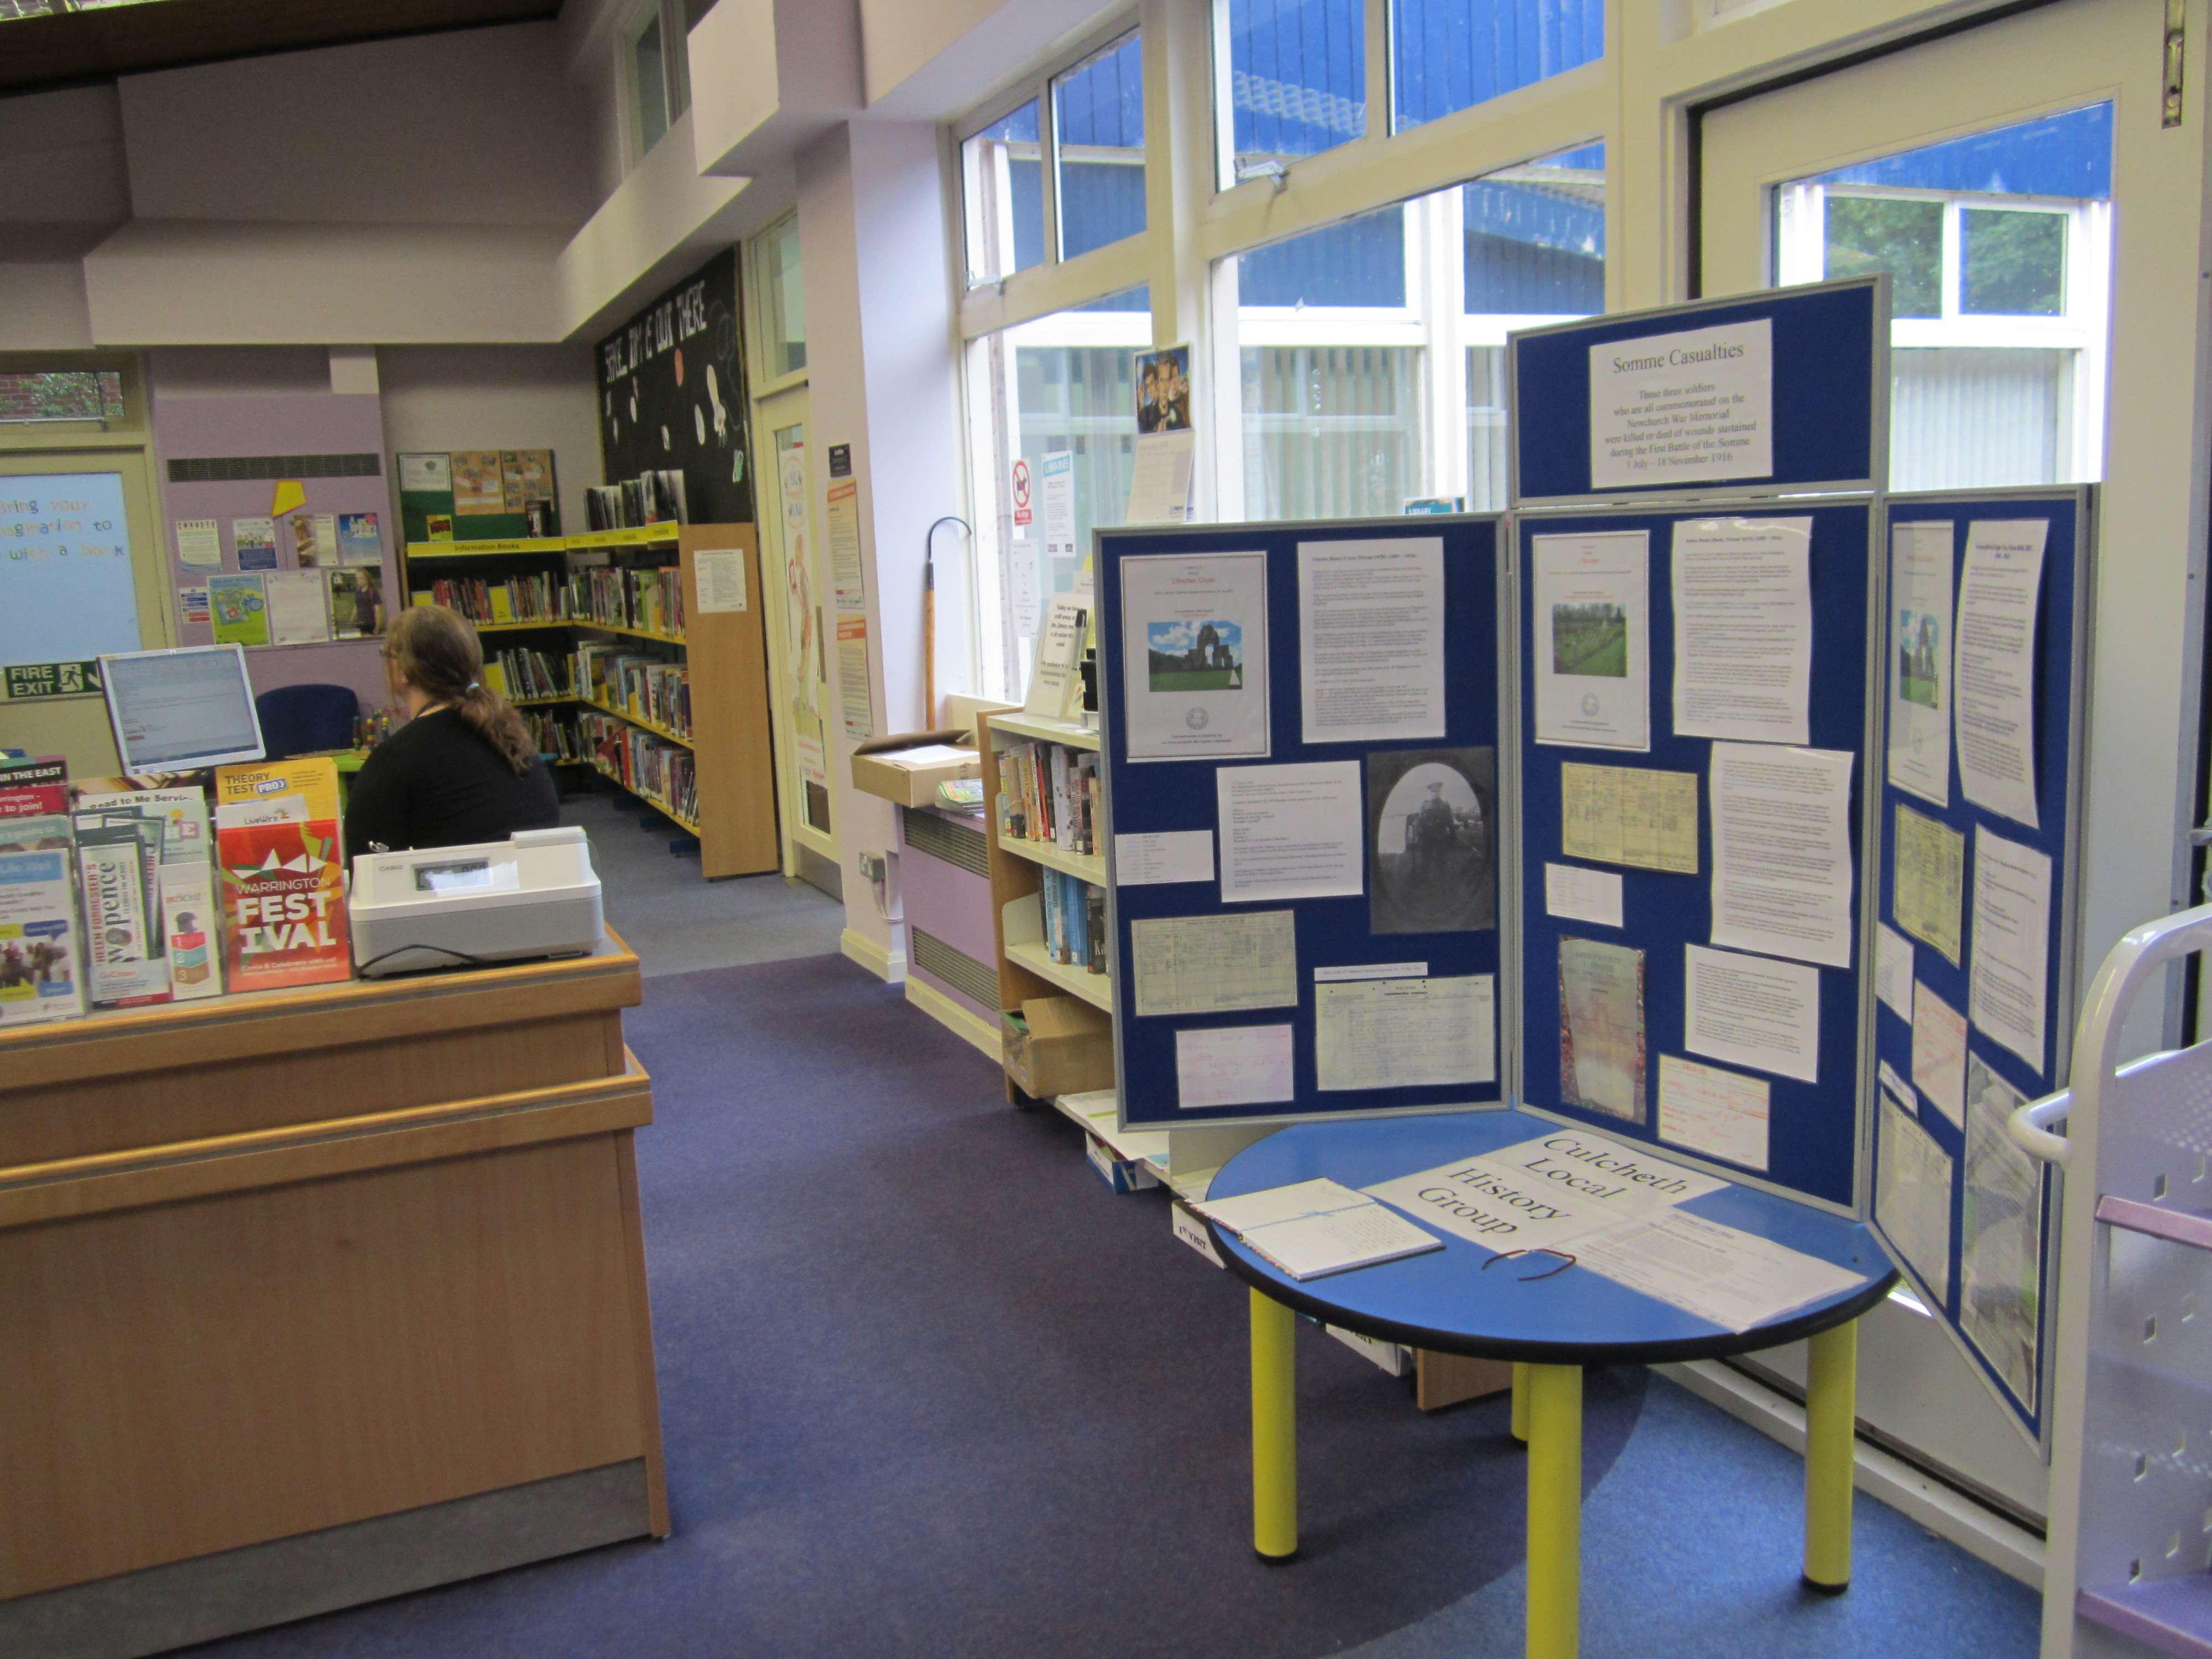 Somme Display in Culcheth Library